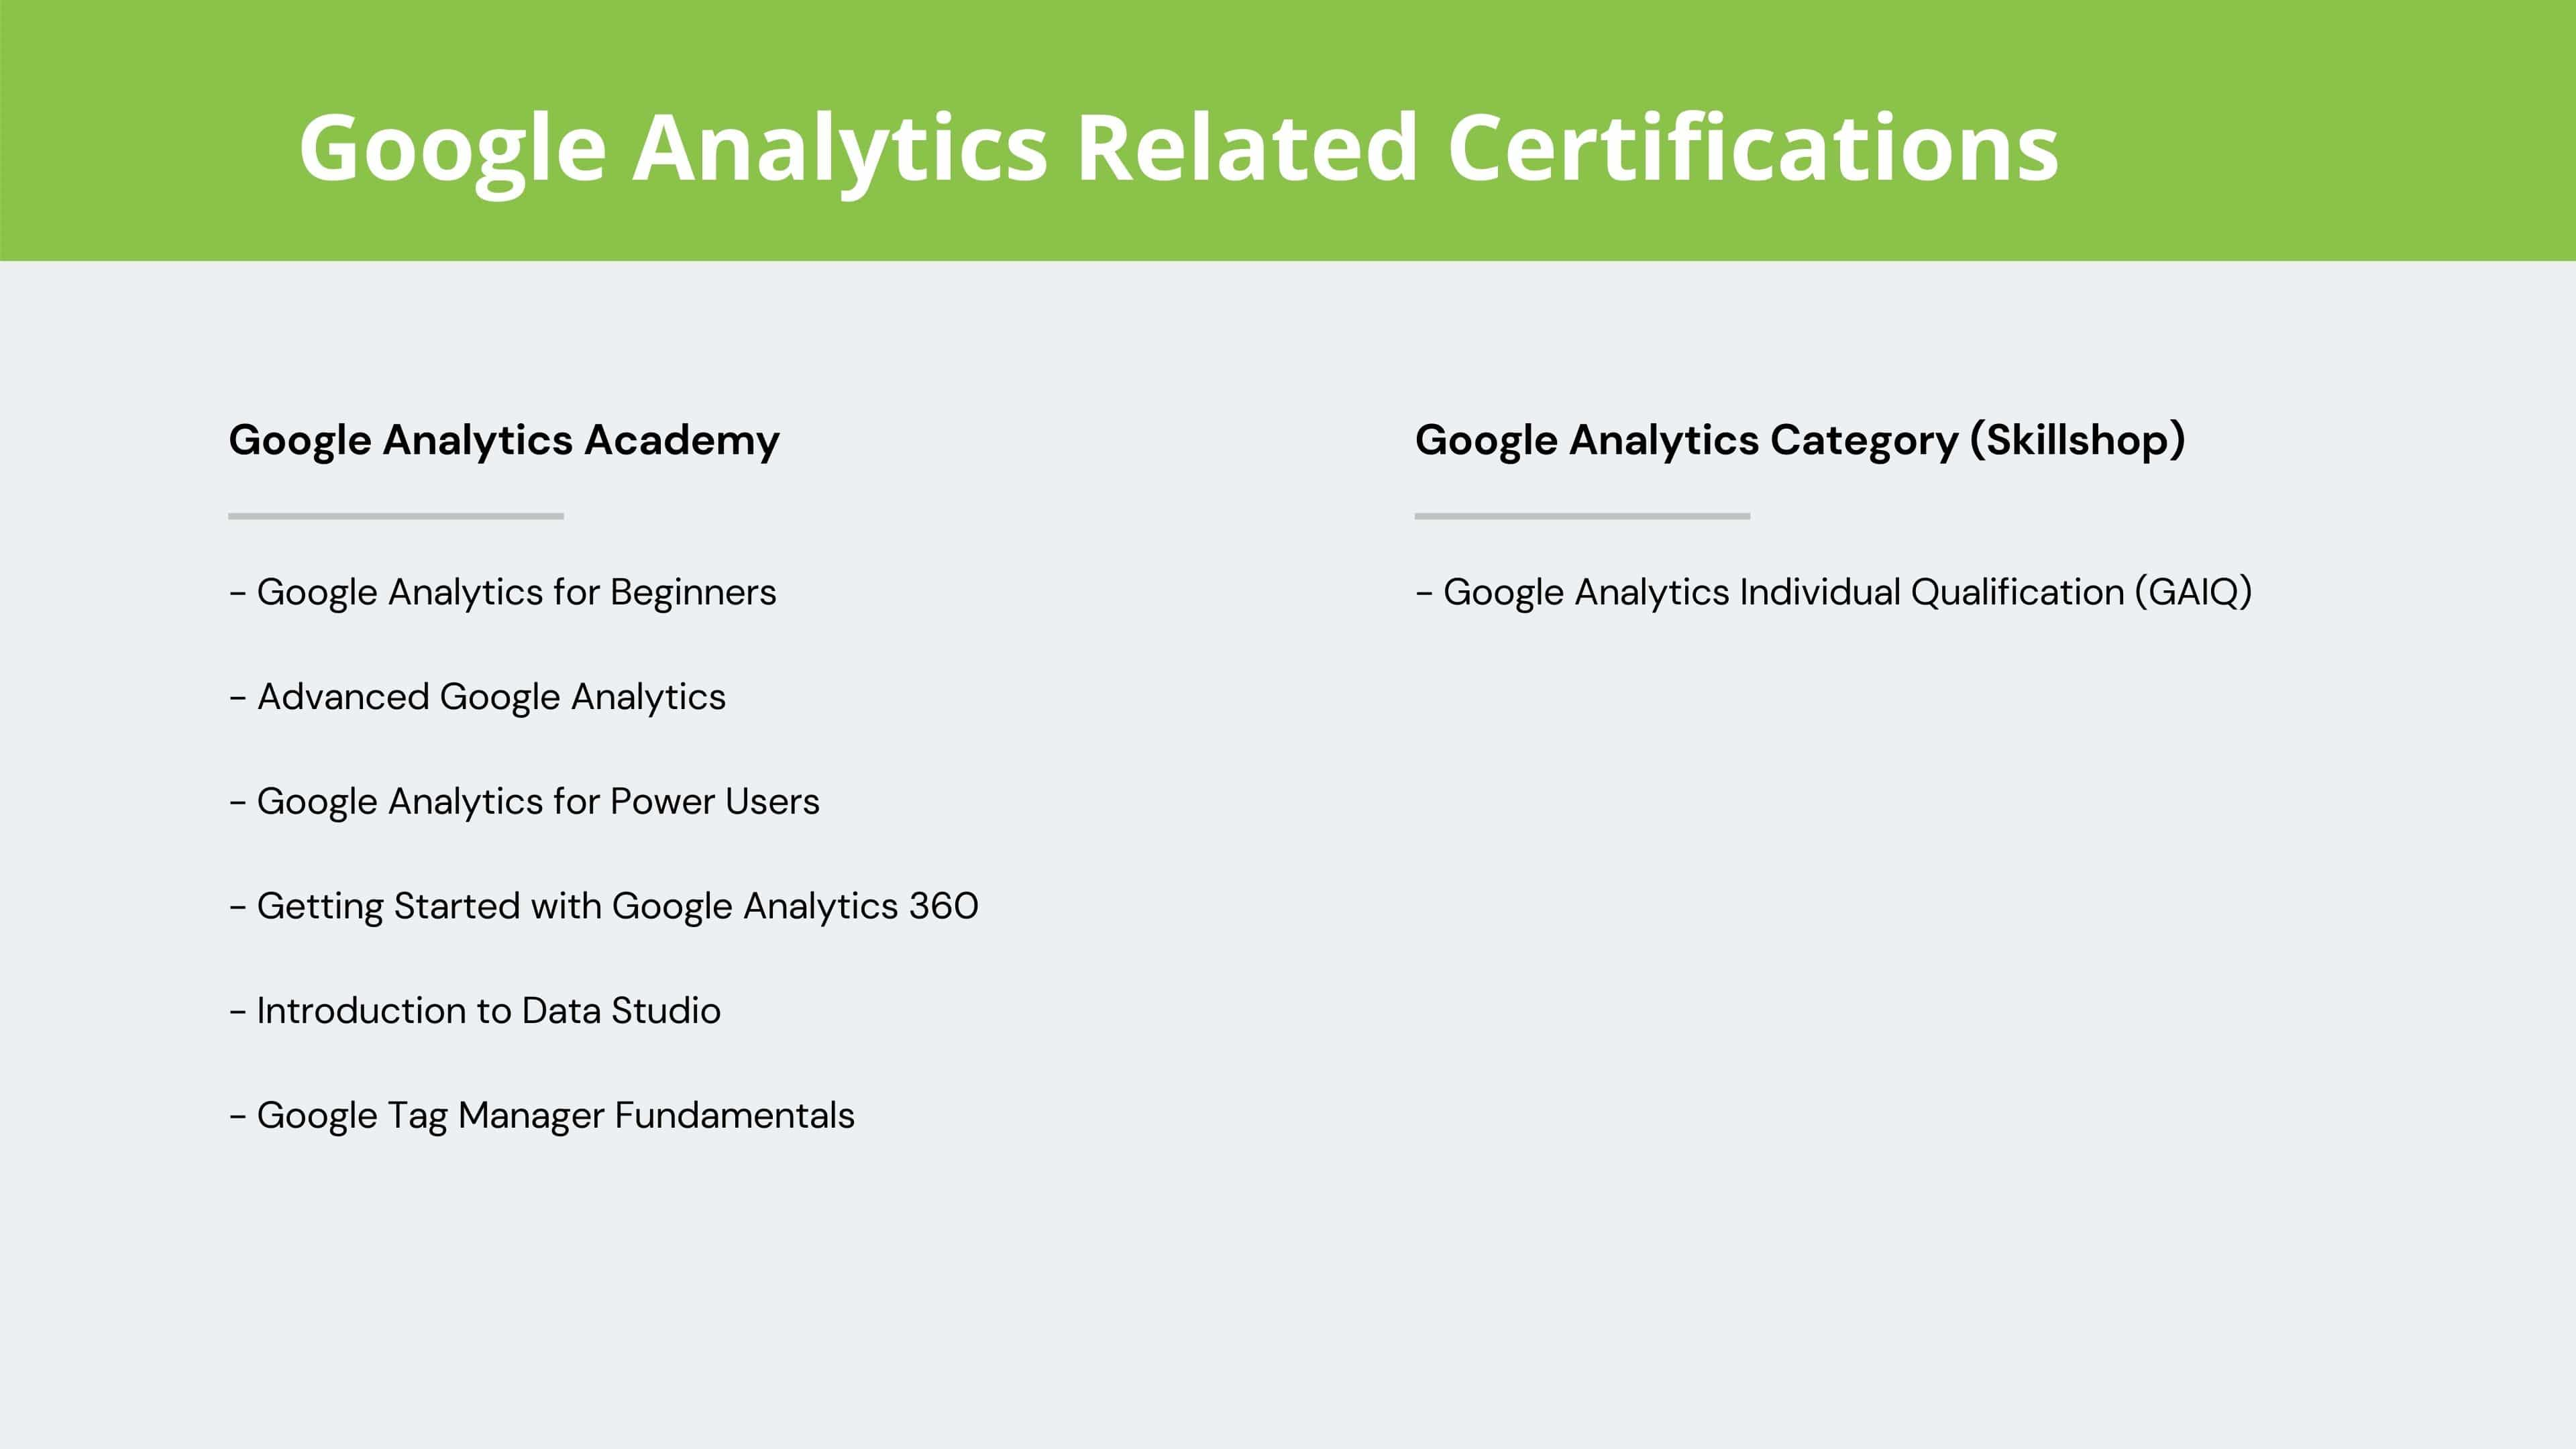 Table of Google Analytics Related Certifications